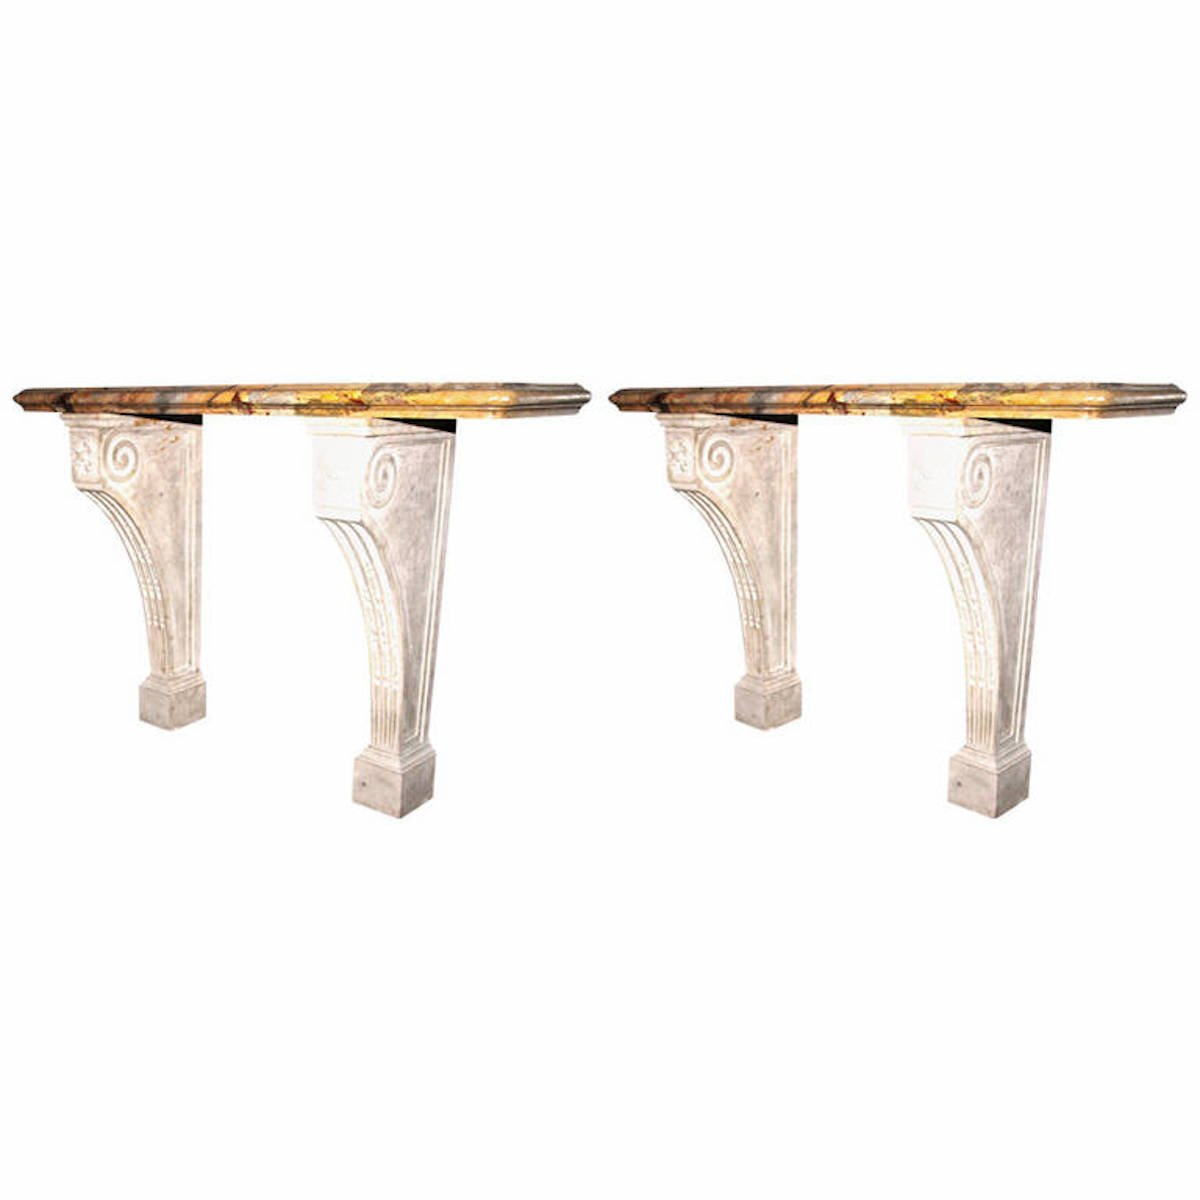 Antique Sarrancolin Marble Console Table, Set of 2 for sale at Pamono